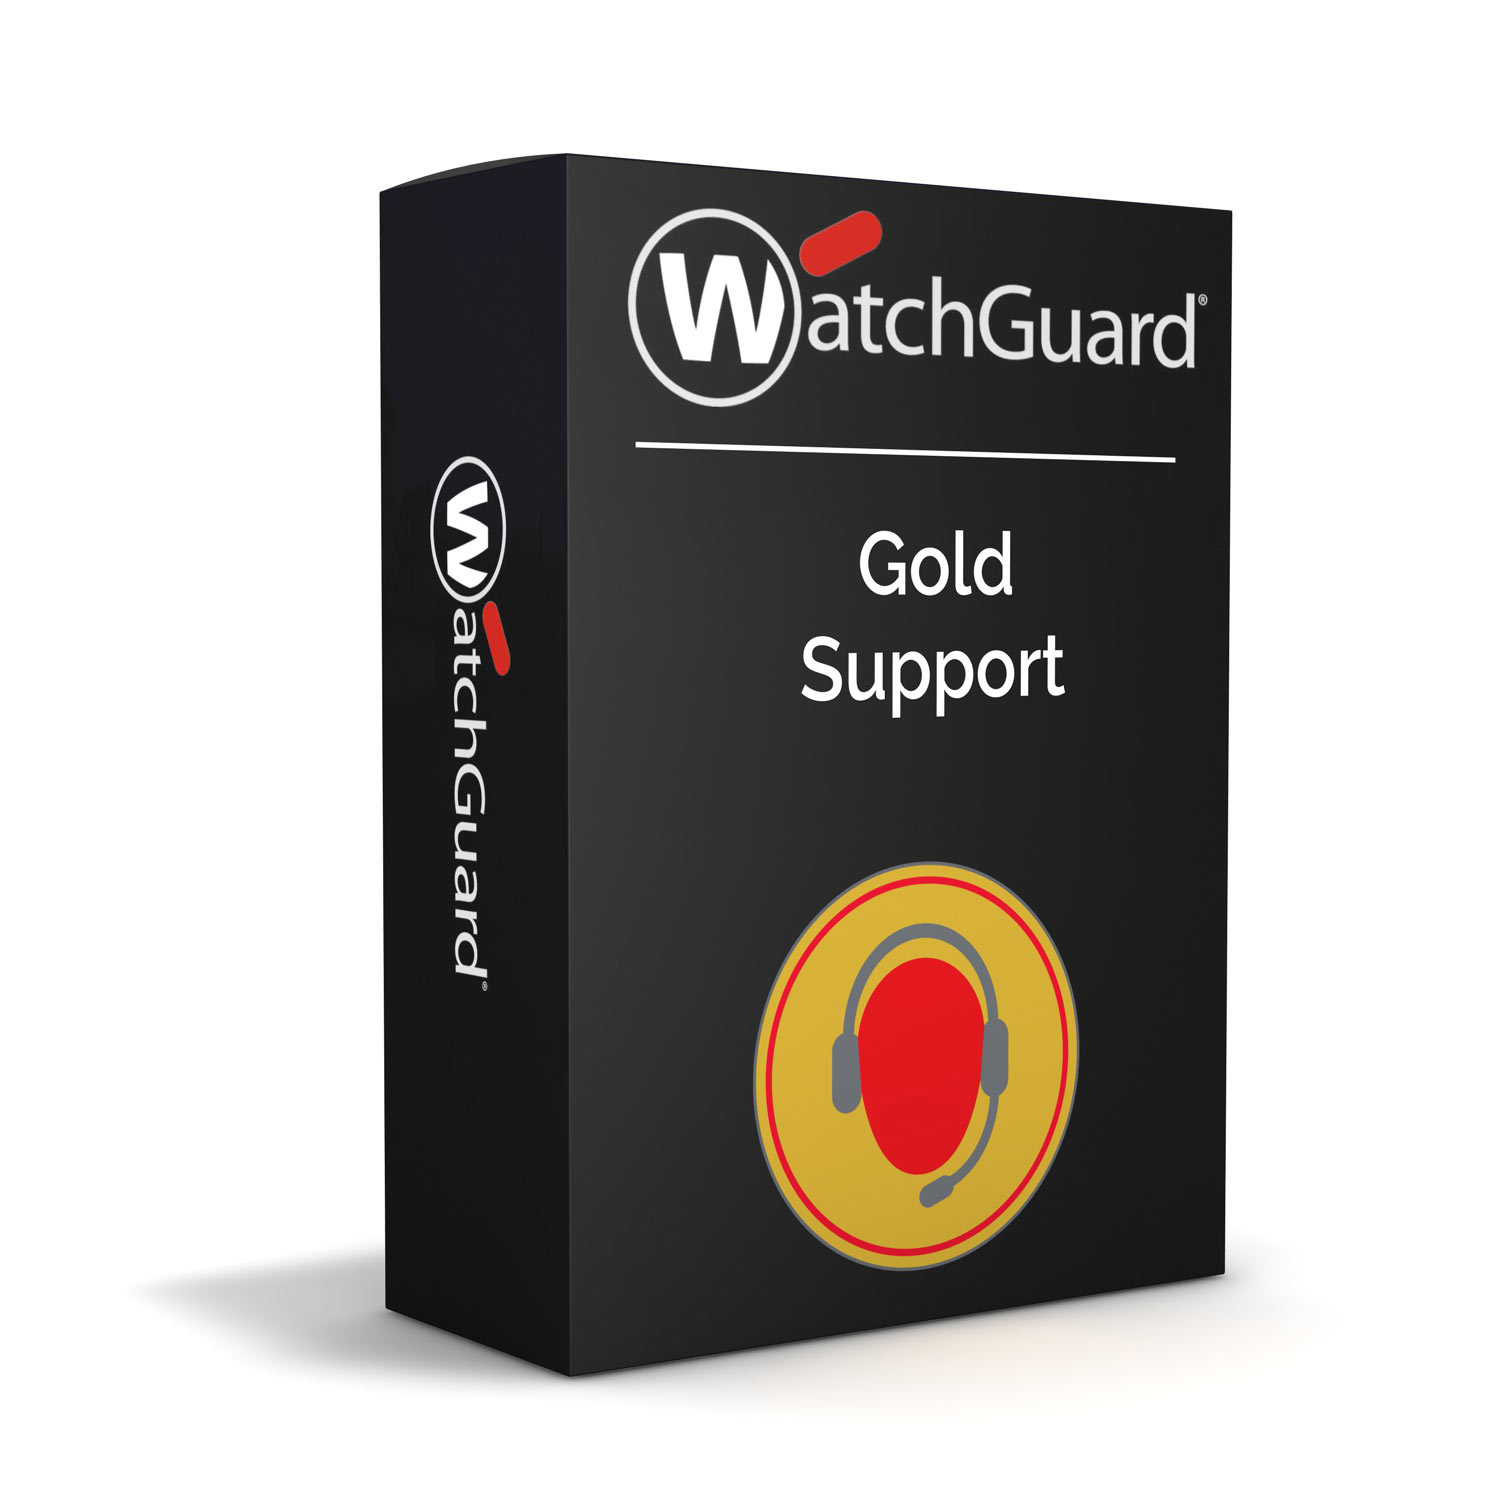 WatchGuard Gold Support Renewal/Upgrade 3-yr for Firebox T35